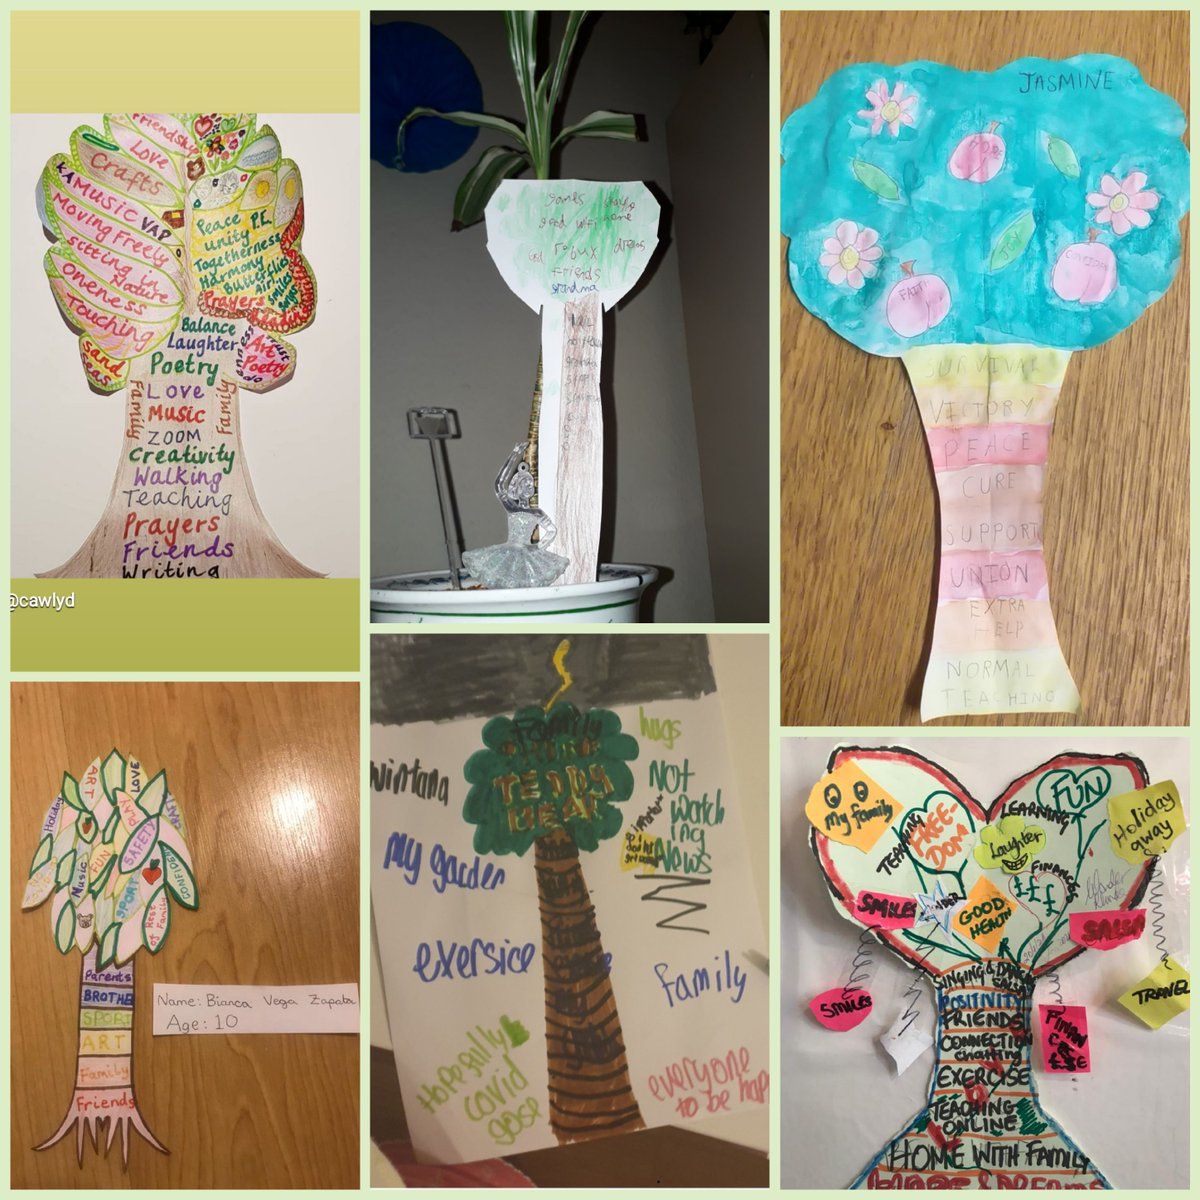 #TreeOfHope by 8-60+ yr old participants from #KamitanArts #VAPArt Online session. We invite the whole family 2 warmly join us 2MORO with Zita Holbourne -Resident Art tutor! @BARACUK WED 6pm -⚡Plse Register: tinyurl.com/VAPArtWED2021 @peoplesbiz @TNLComFund